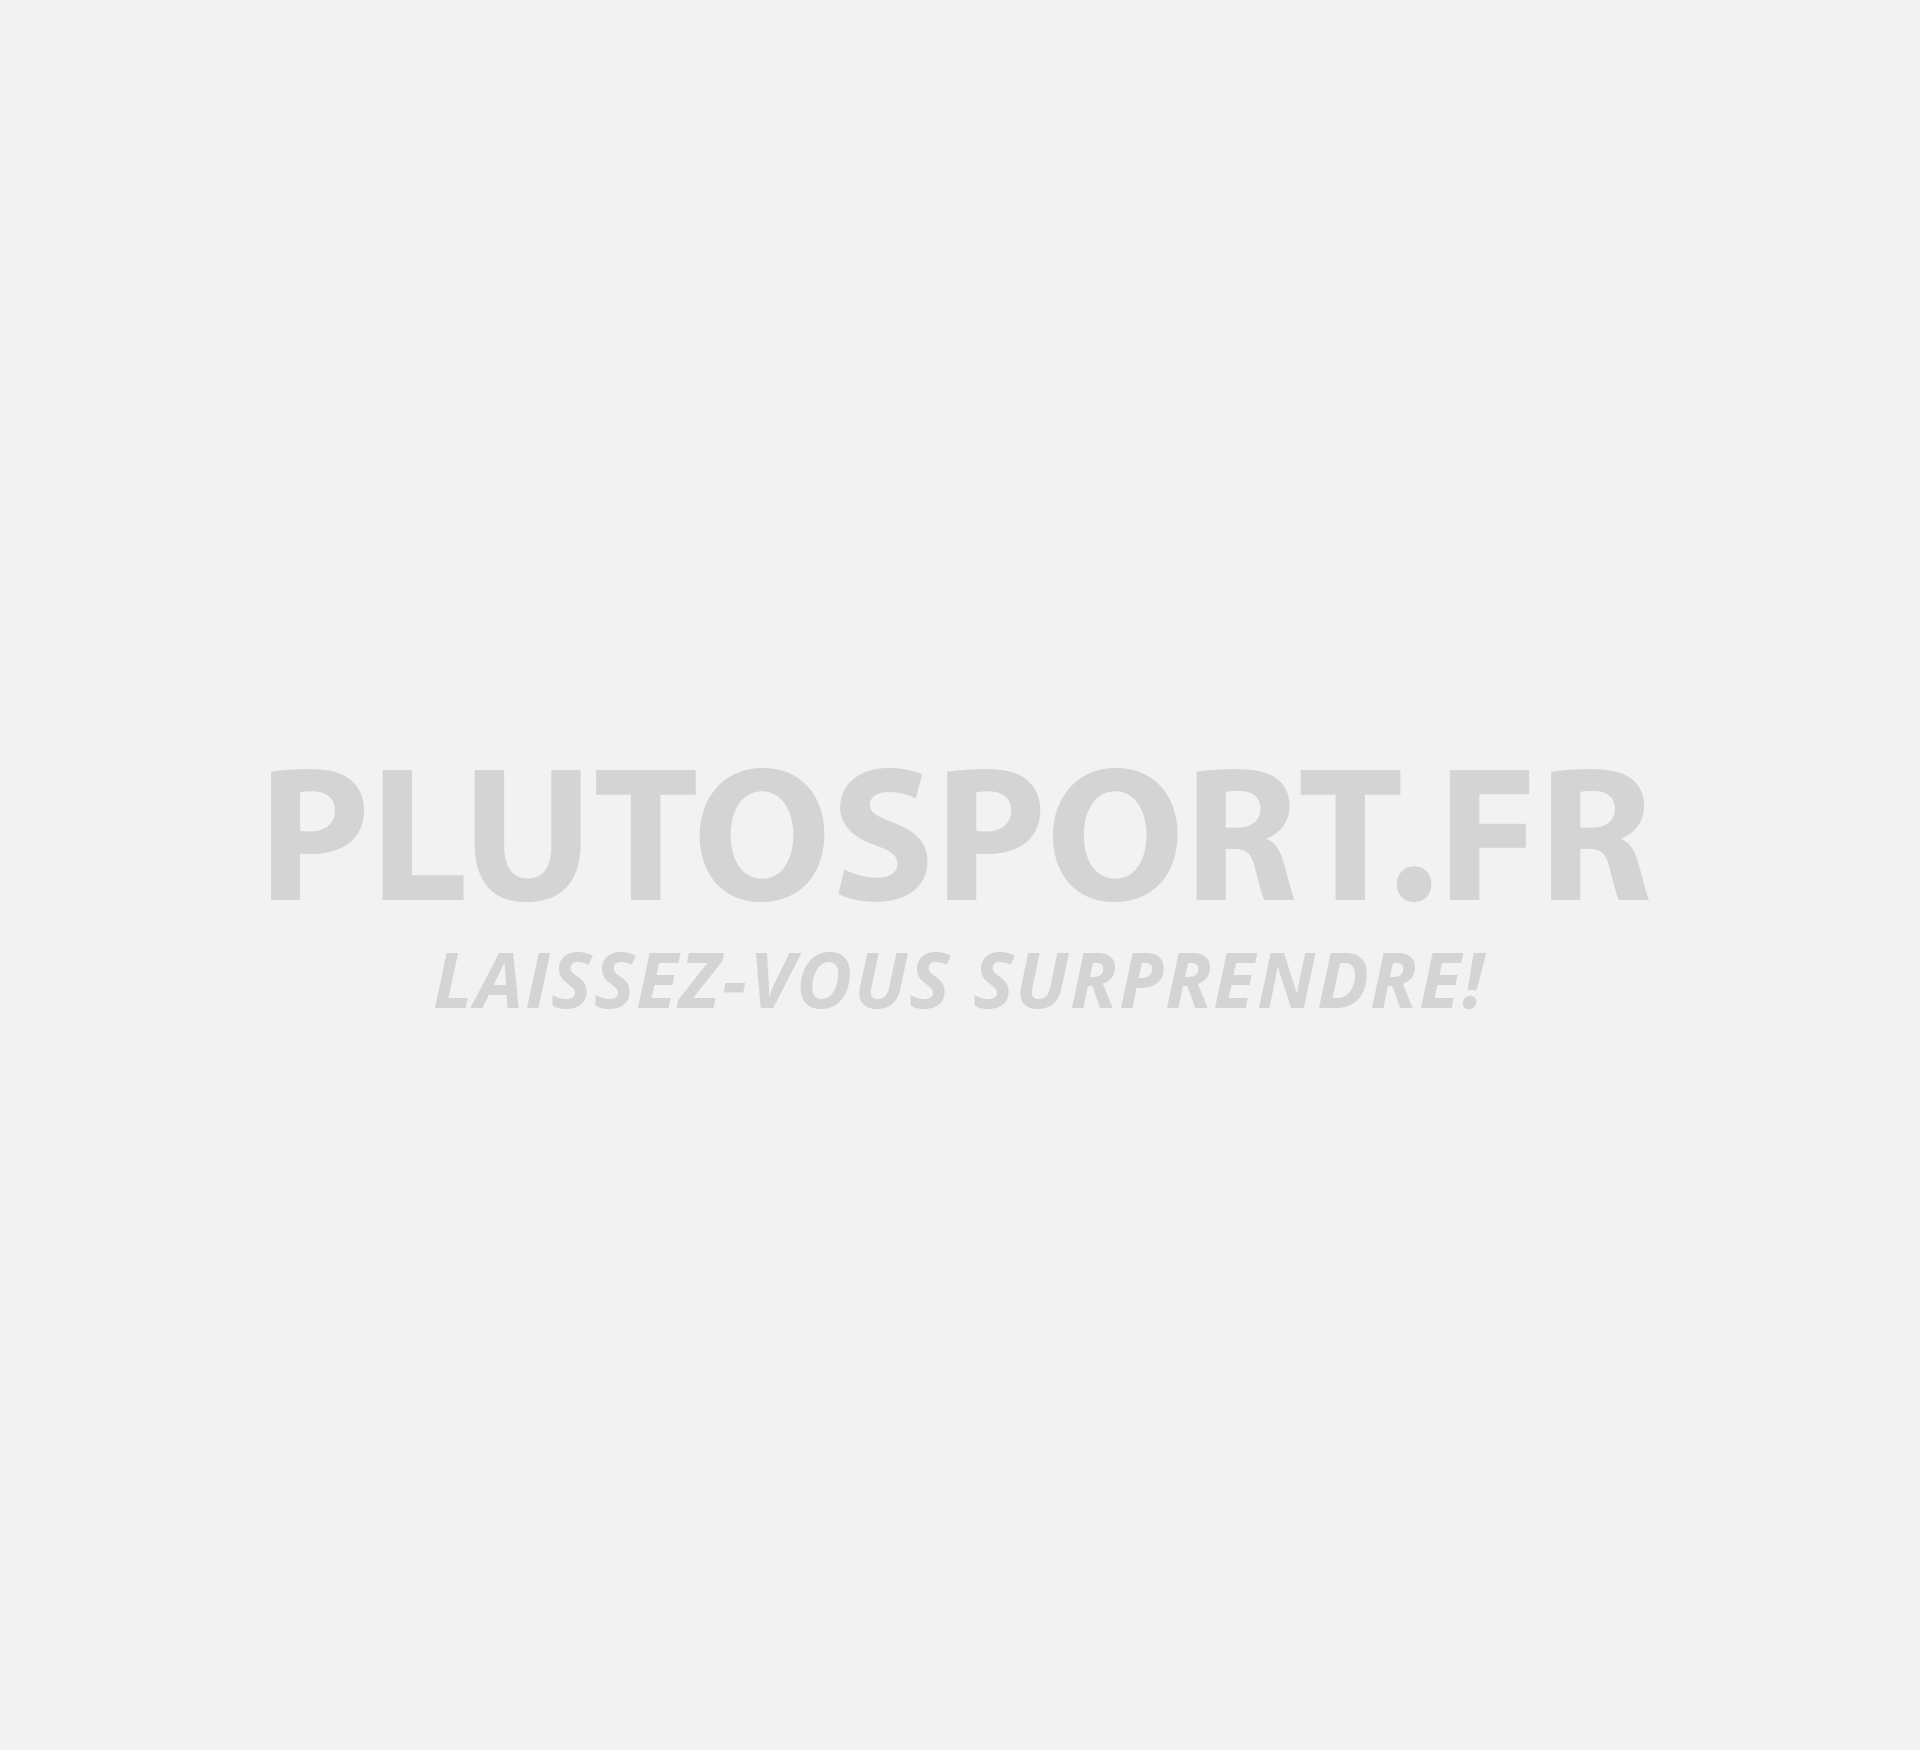 Le t-shirt pour hommes The North Face Fine S/S Tee